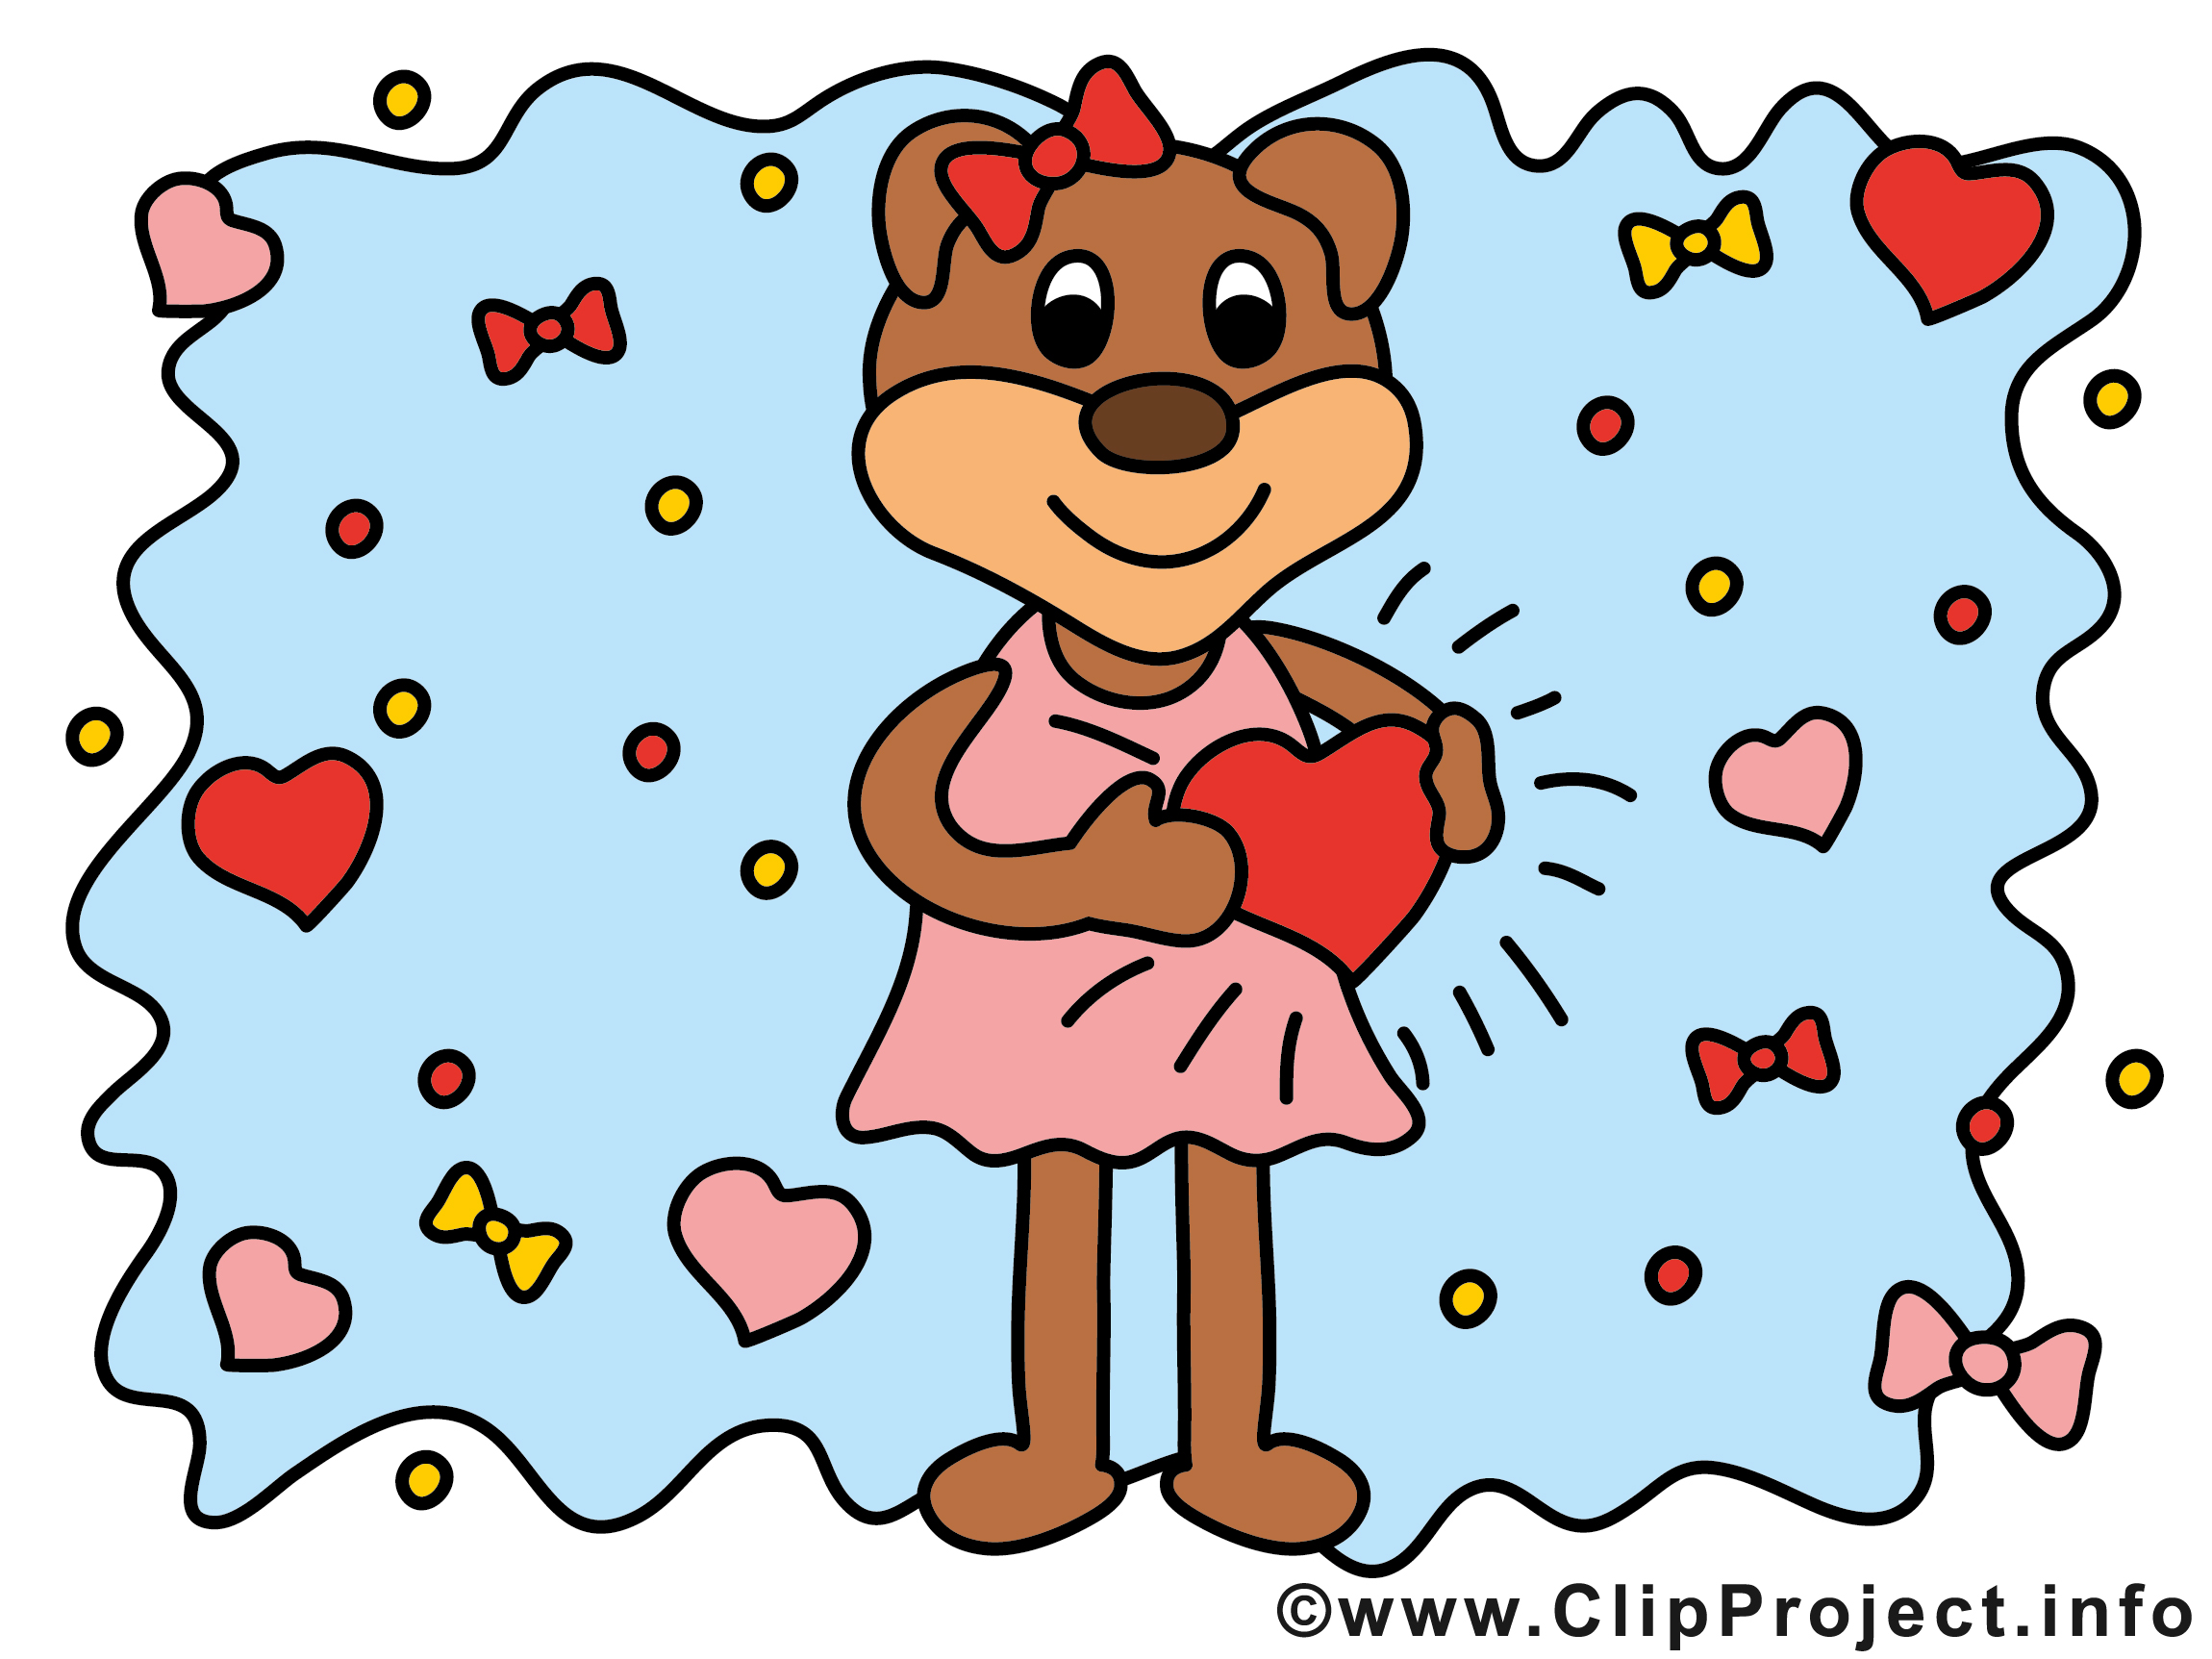 Clipart liebe clipart royalty free download Clipart Liebe clipart royalty free download